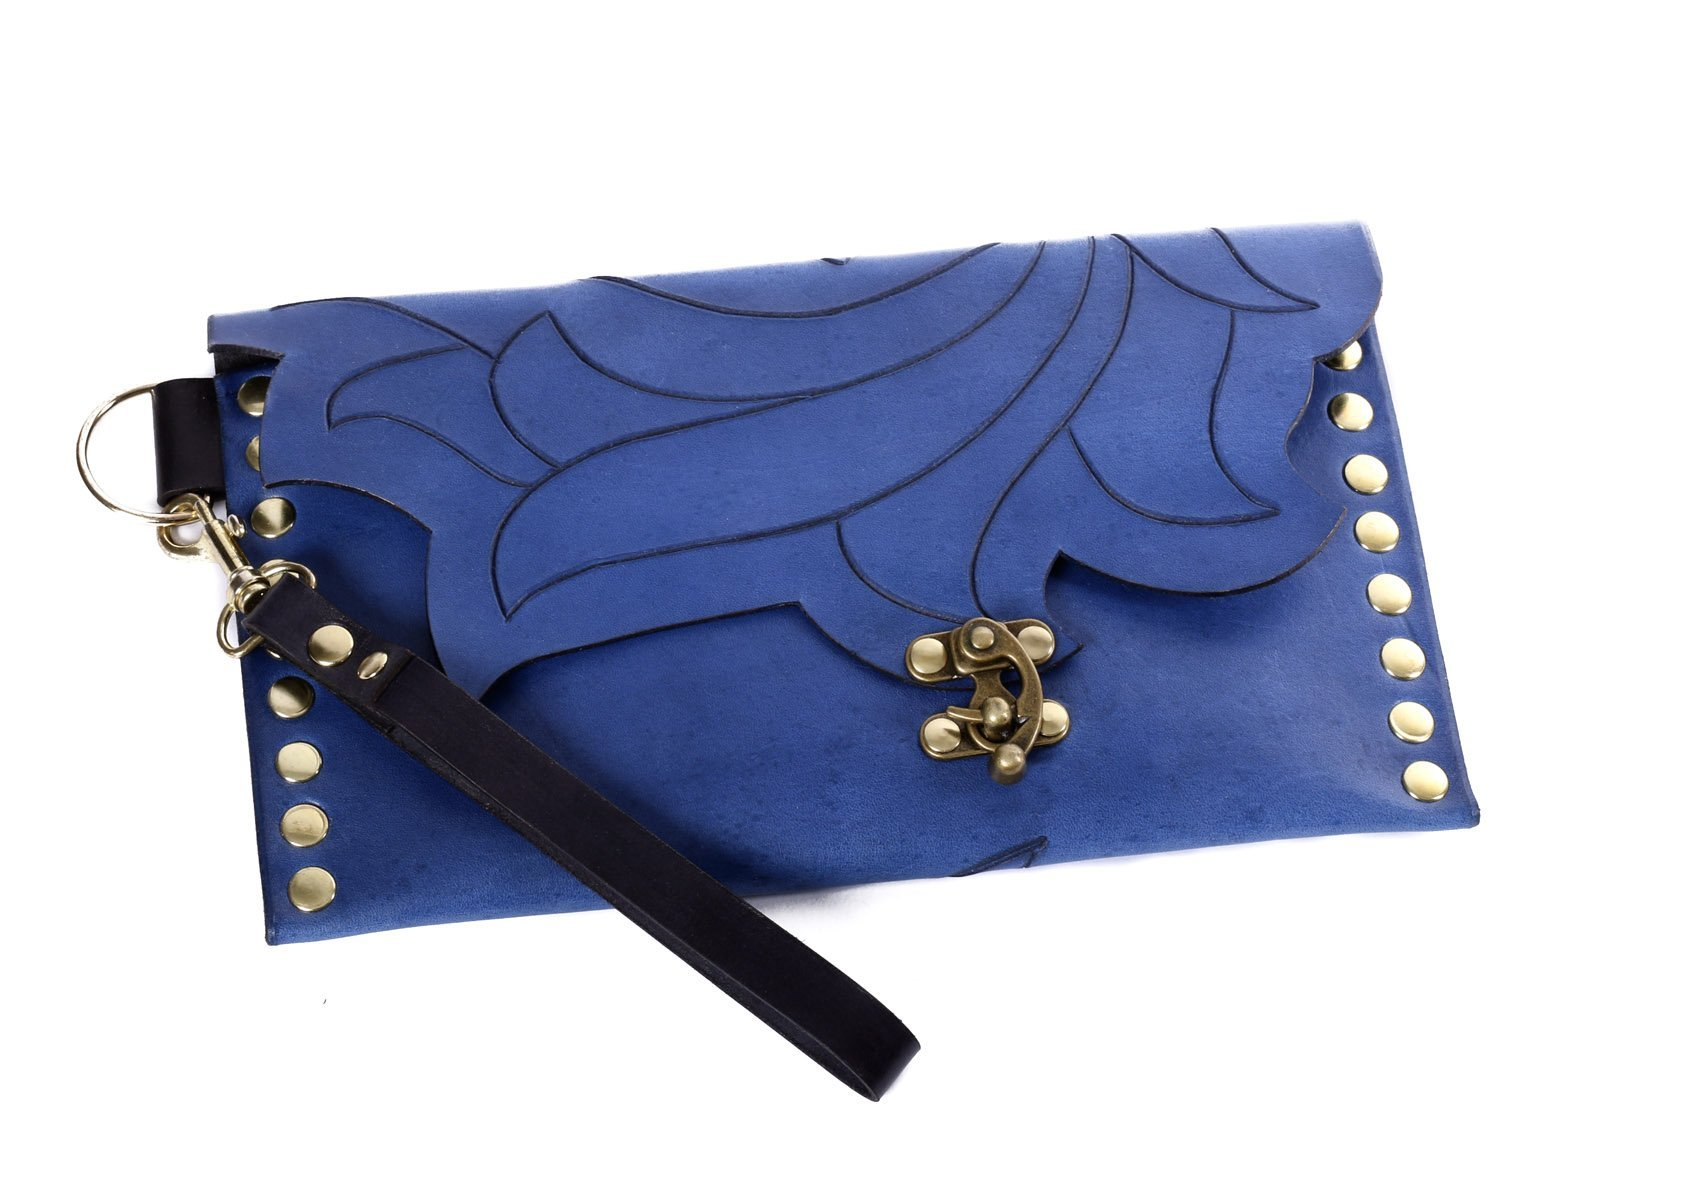 Leather blue lotus clutch or wristlet with clasp